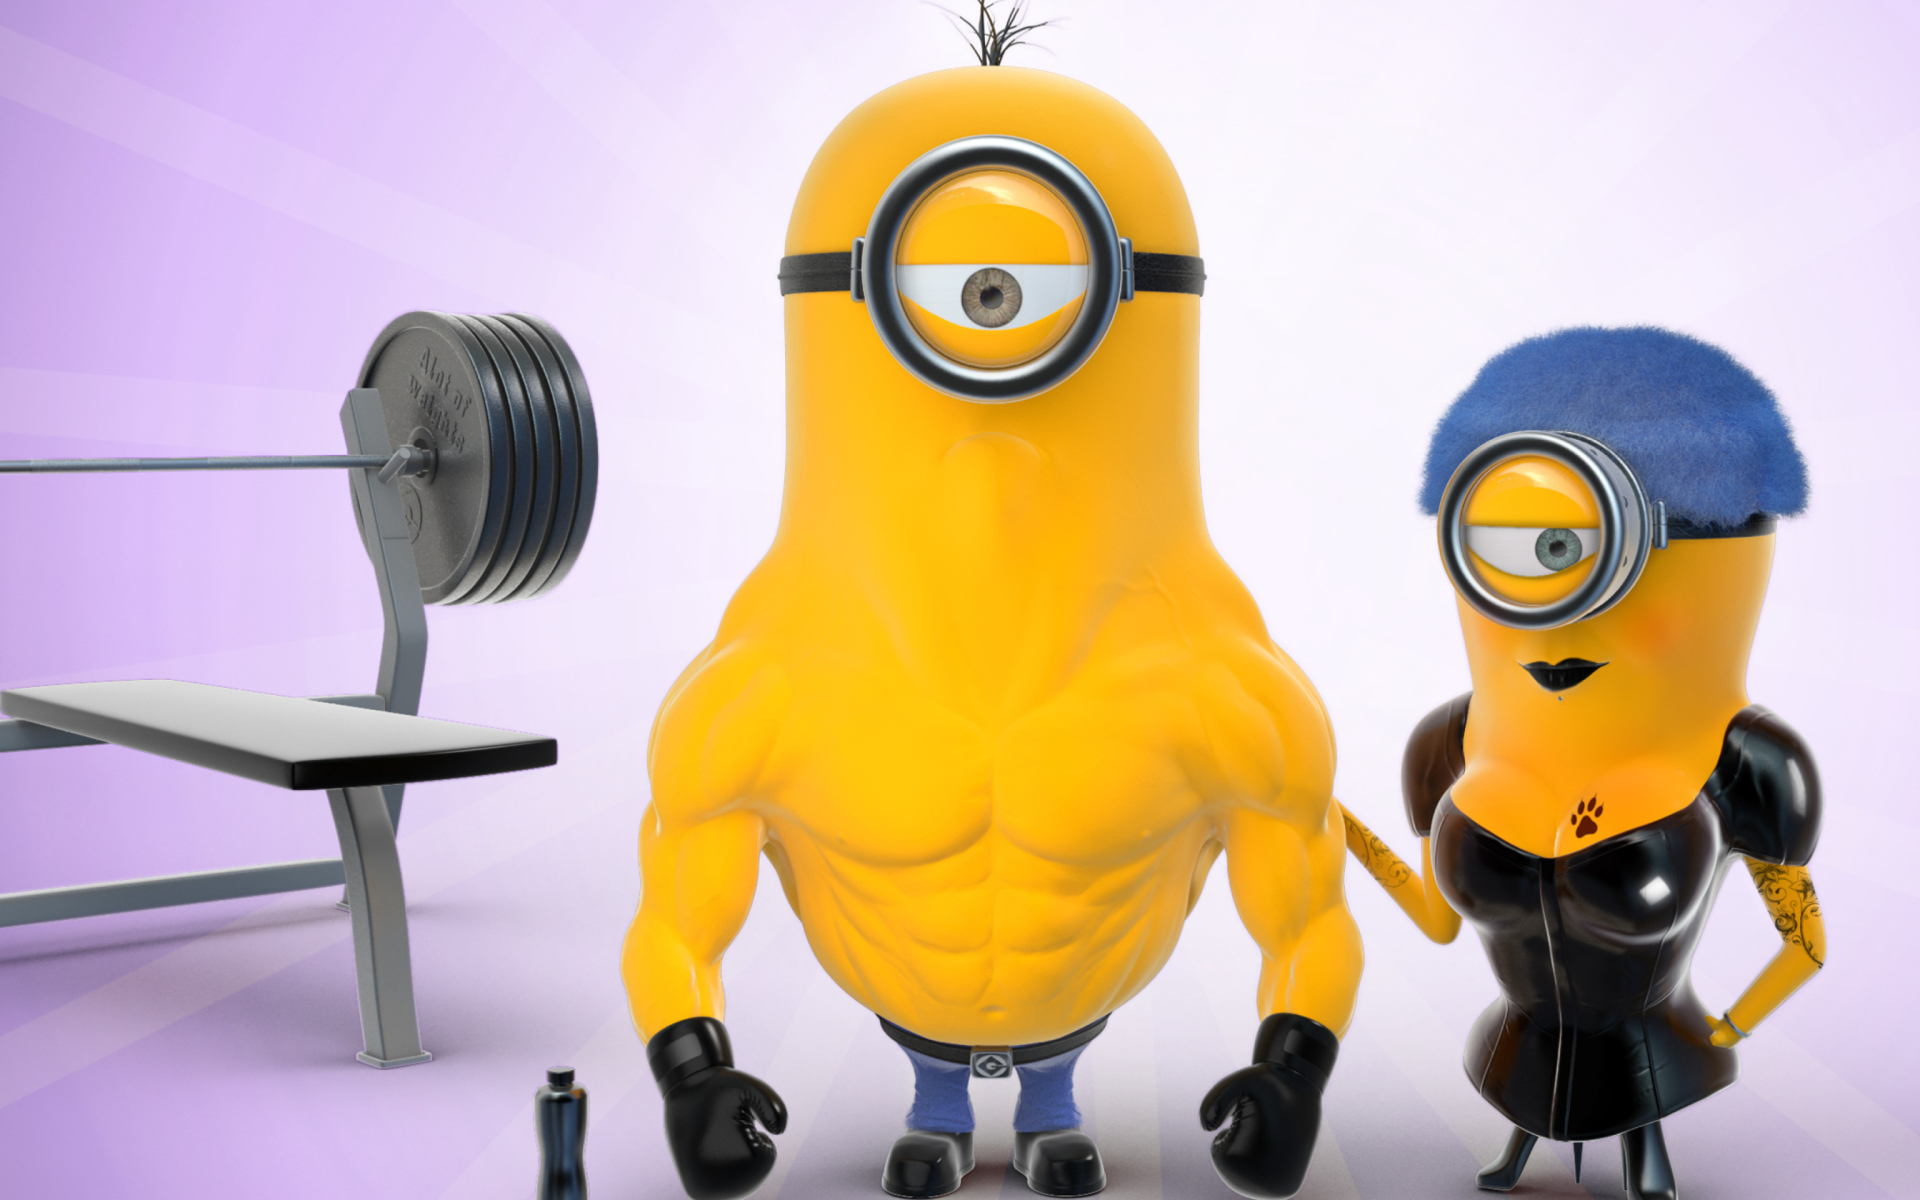 funny cute minions hd wallpapers hd wallpapers, gifs 1920x1200